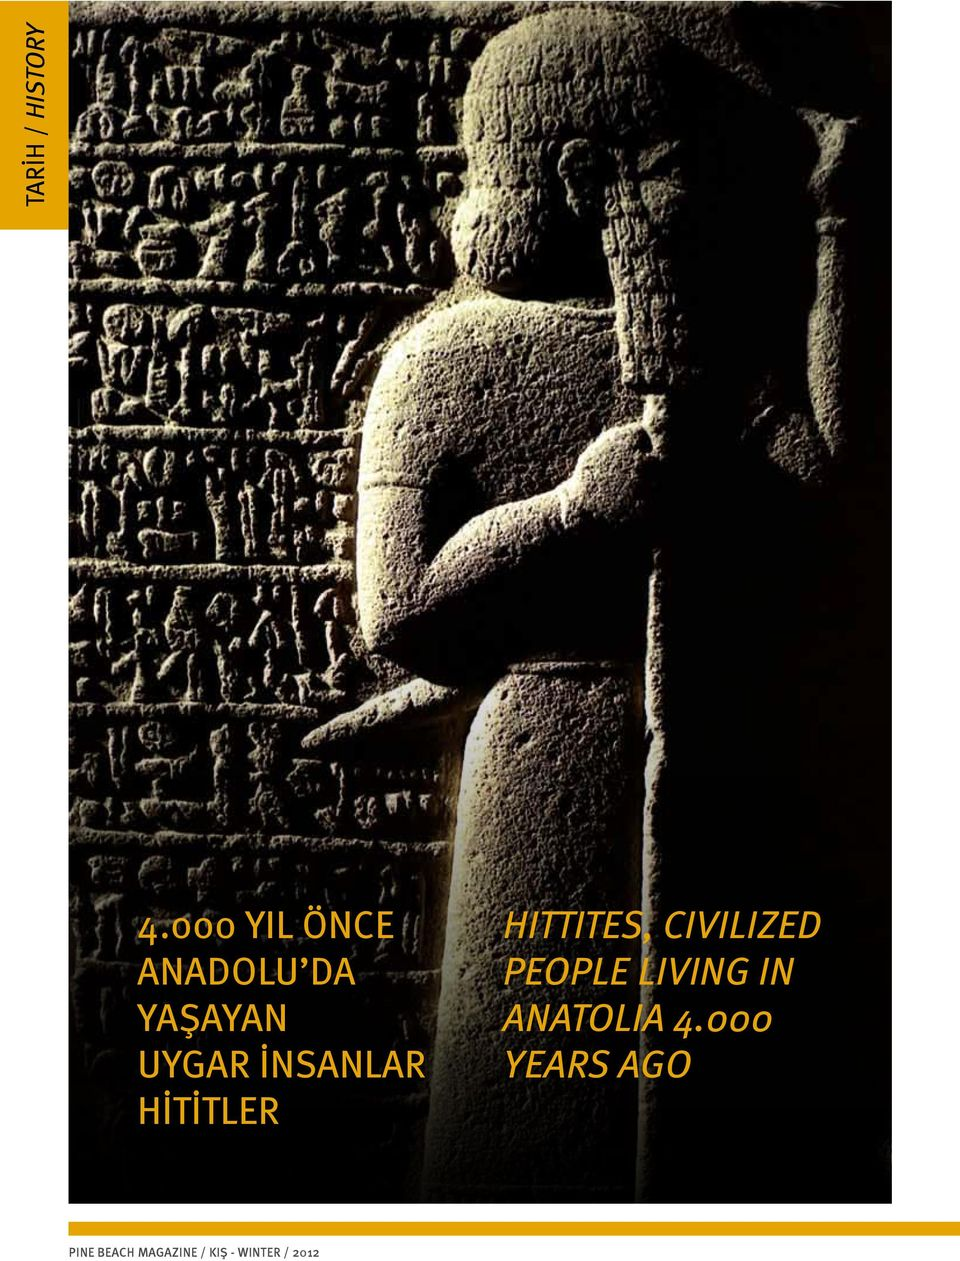 İNSANLAR HİTİTLER HITTITES, CIVILIZED PEOPLE